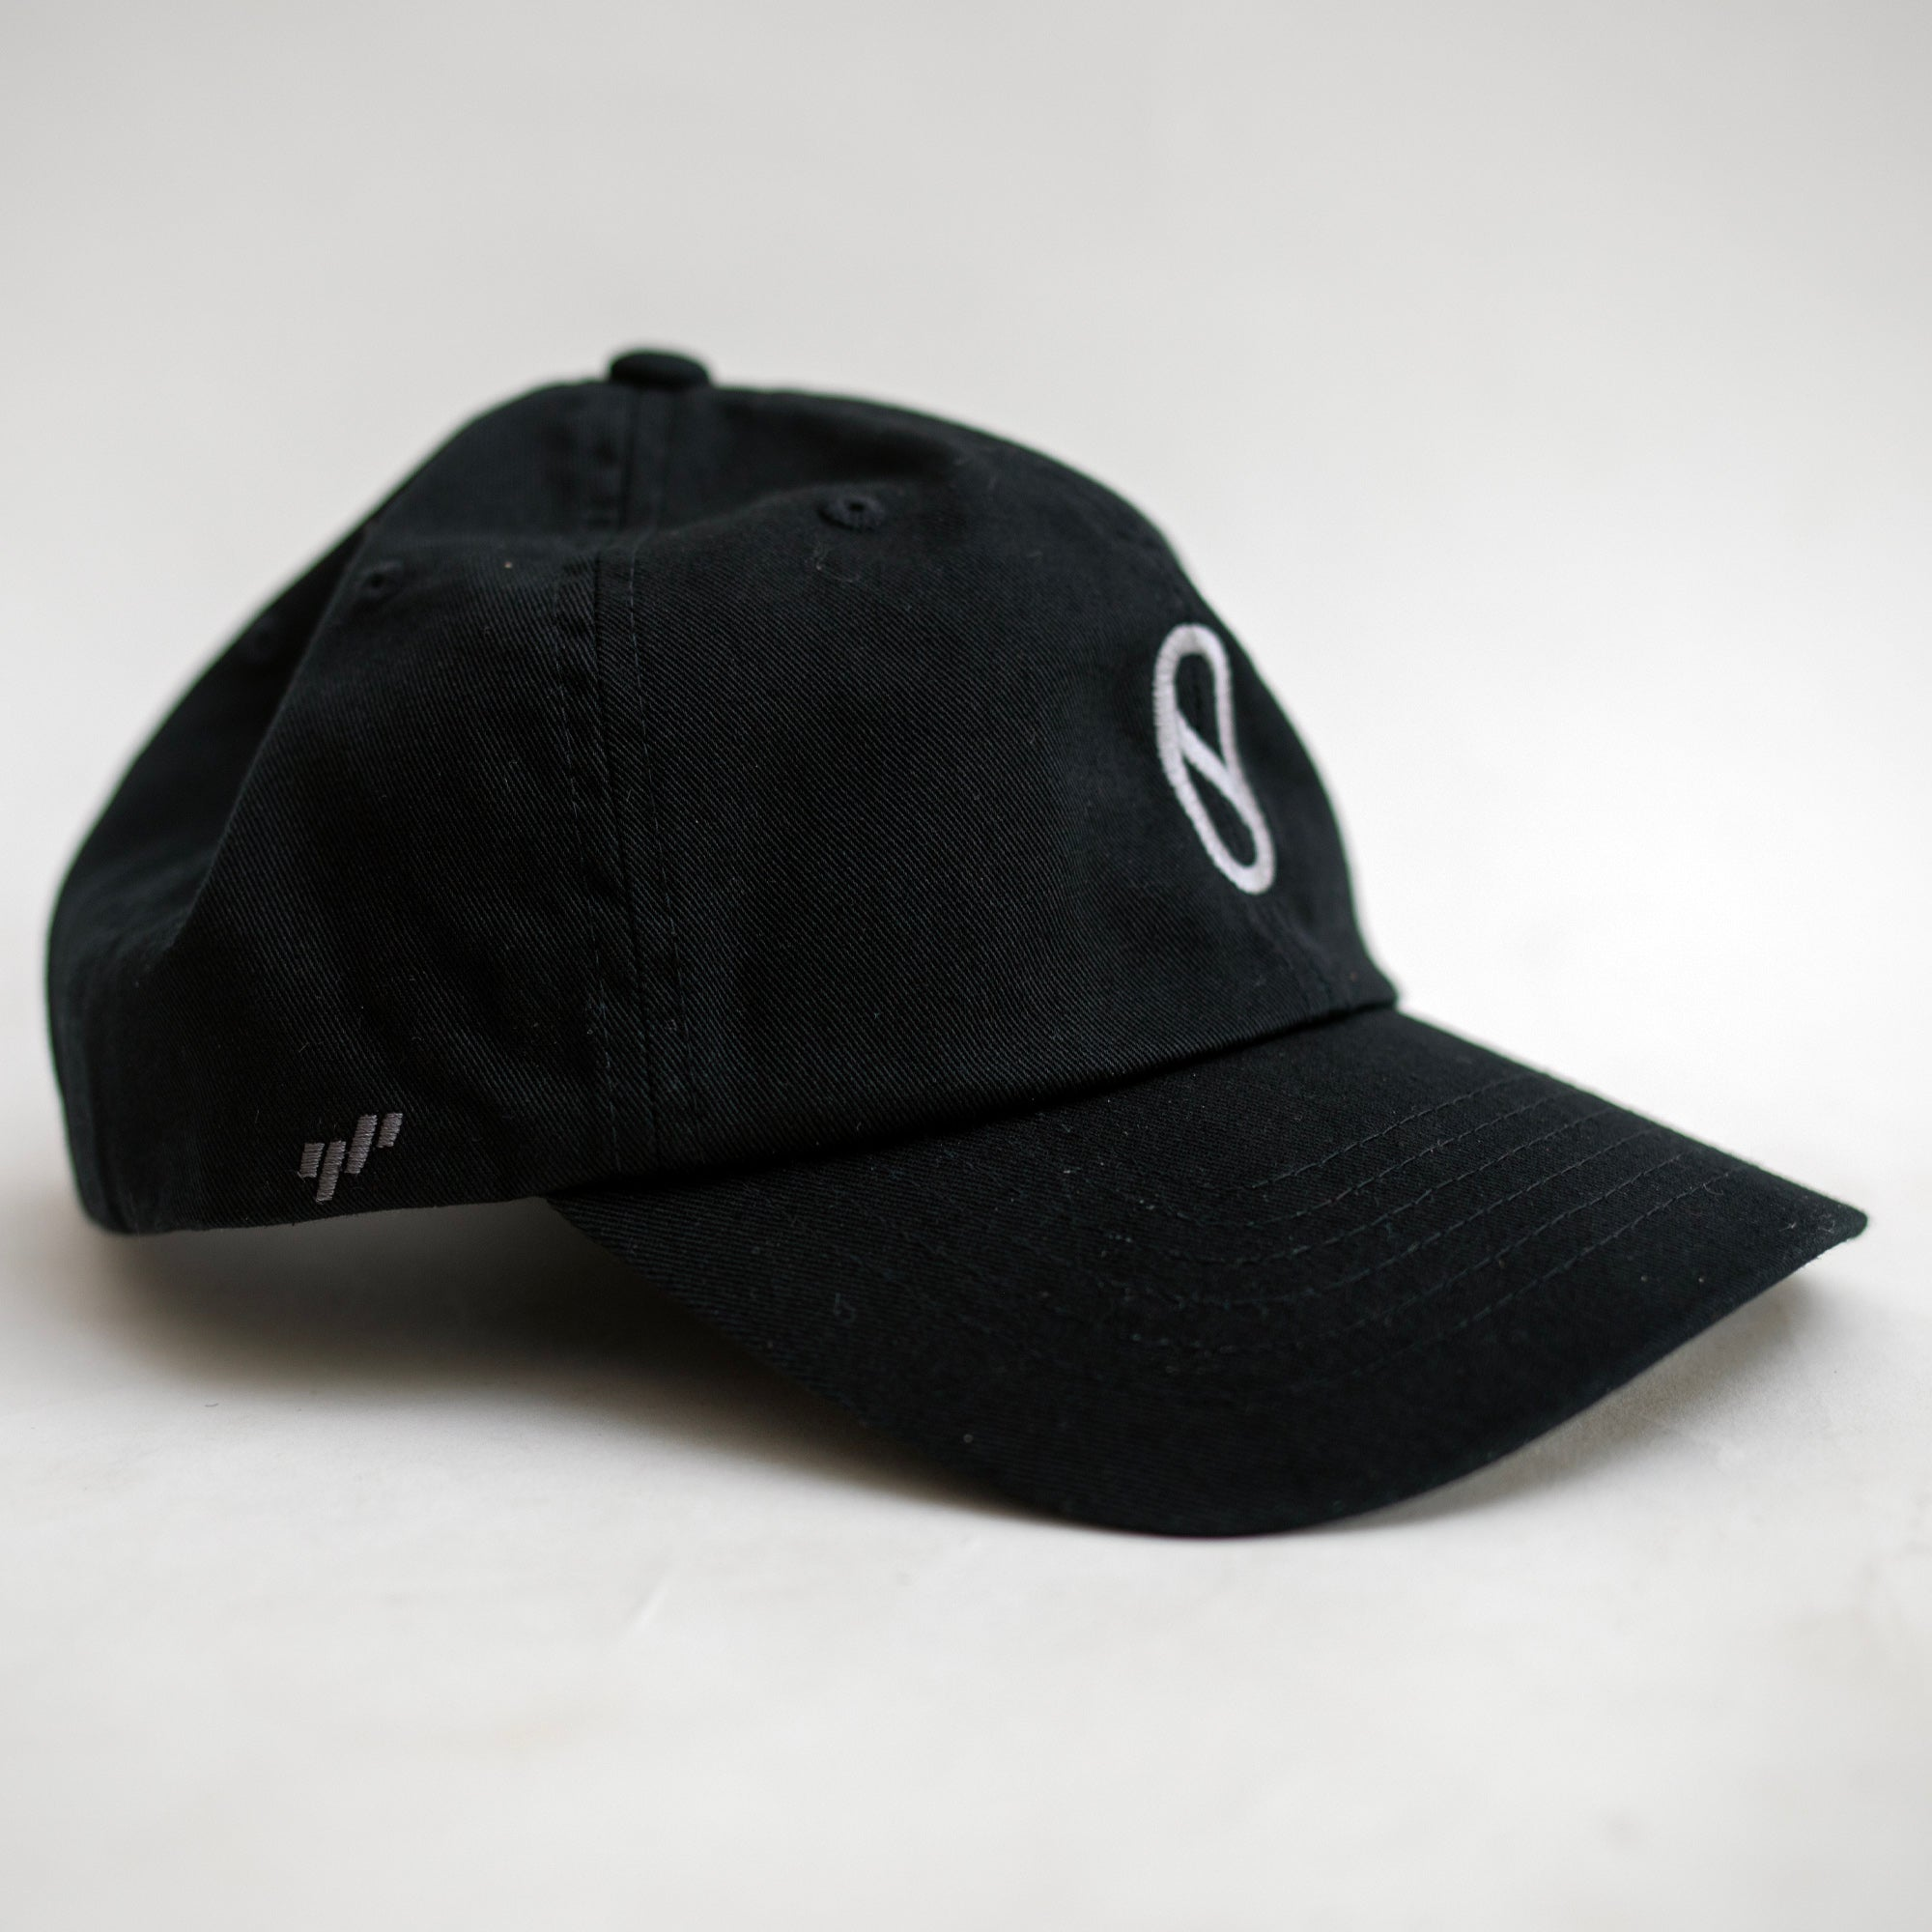 Firewire Slater Designs Pill Dad Hat - Black